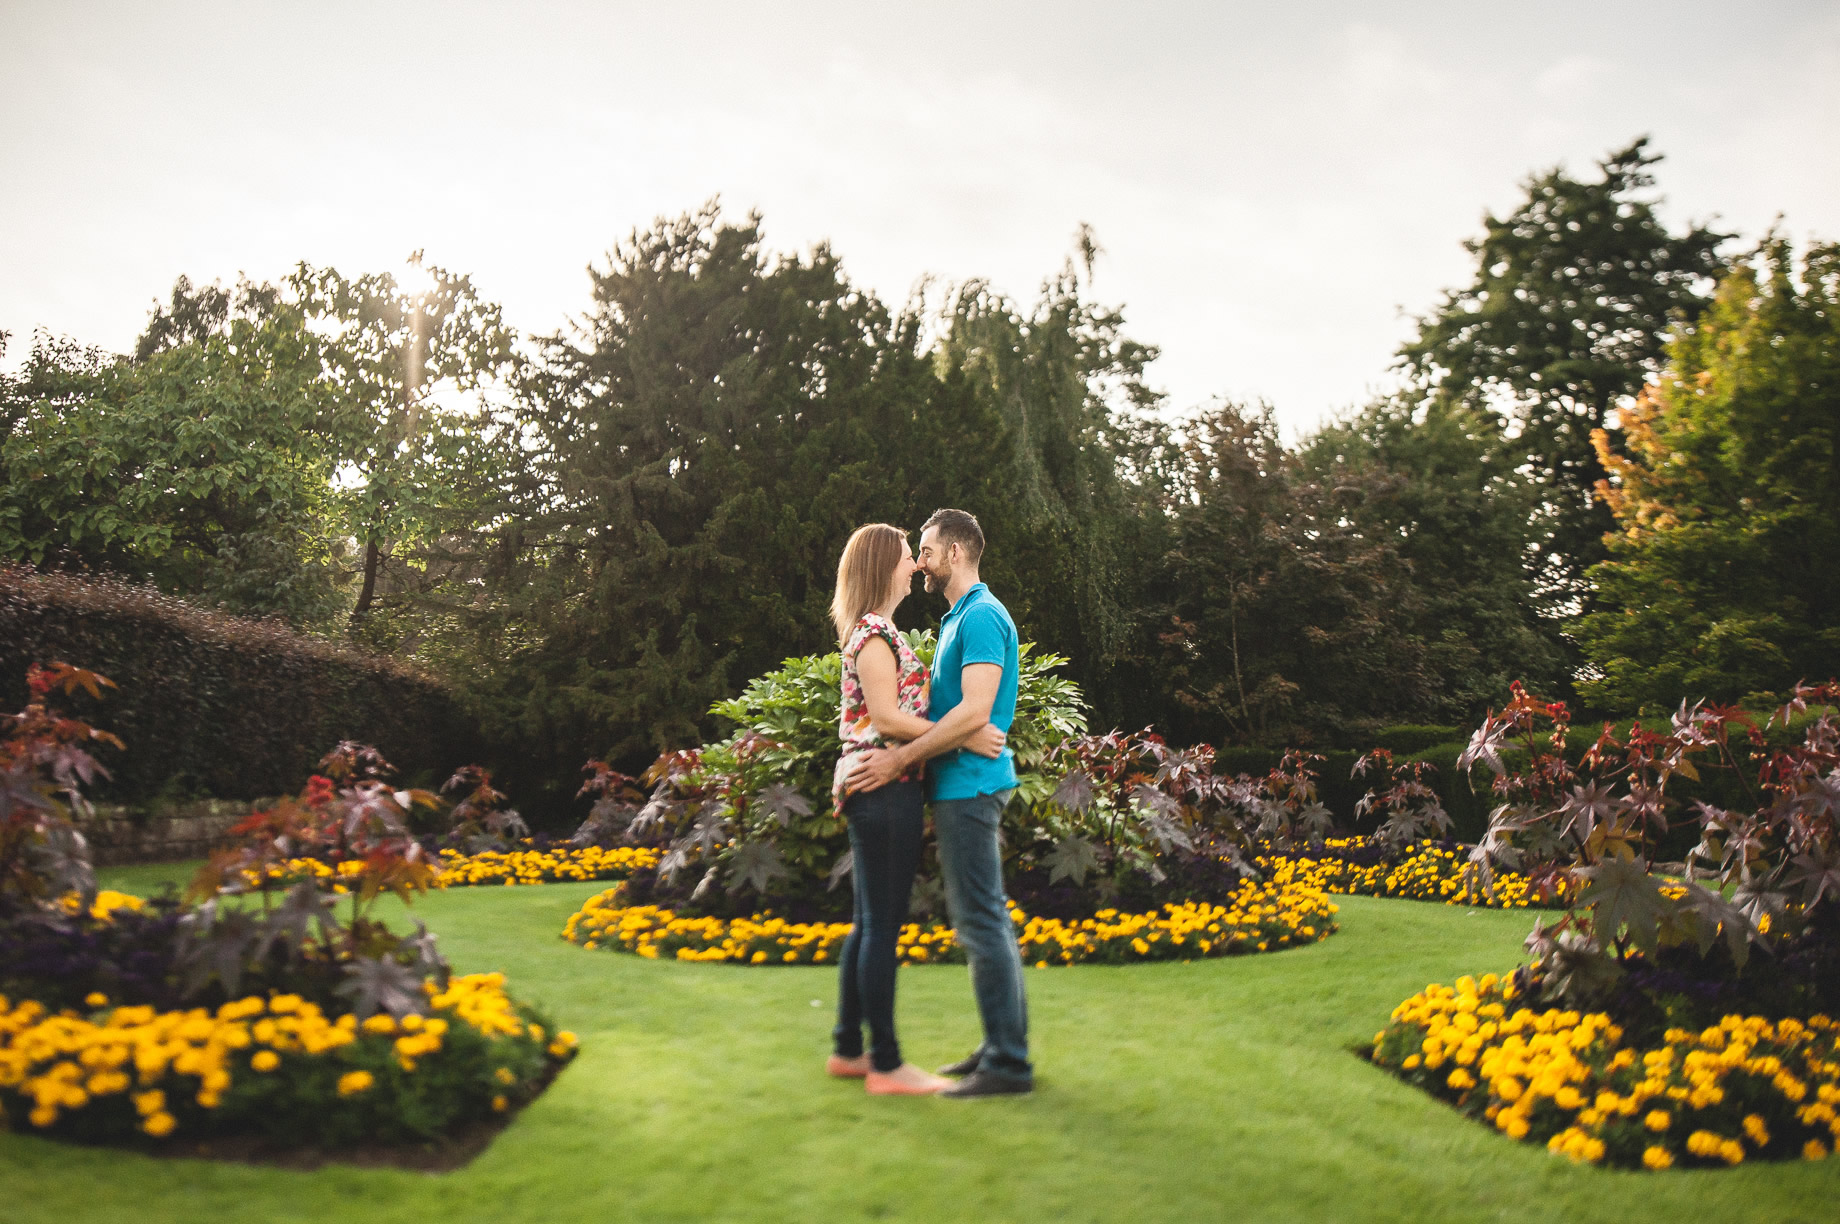 Keri and Paul's Pre-Wedding Shoot at Walton Gardens 007